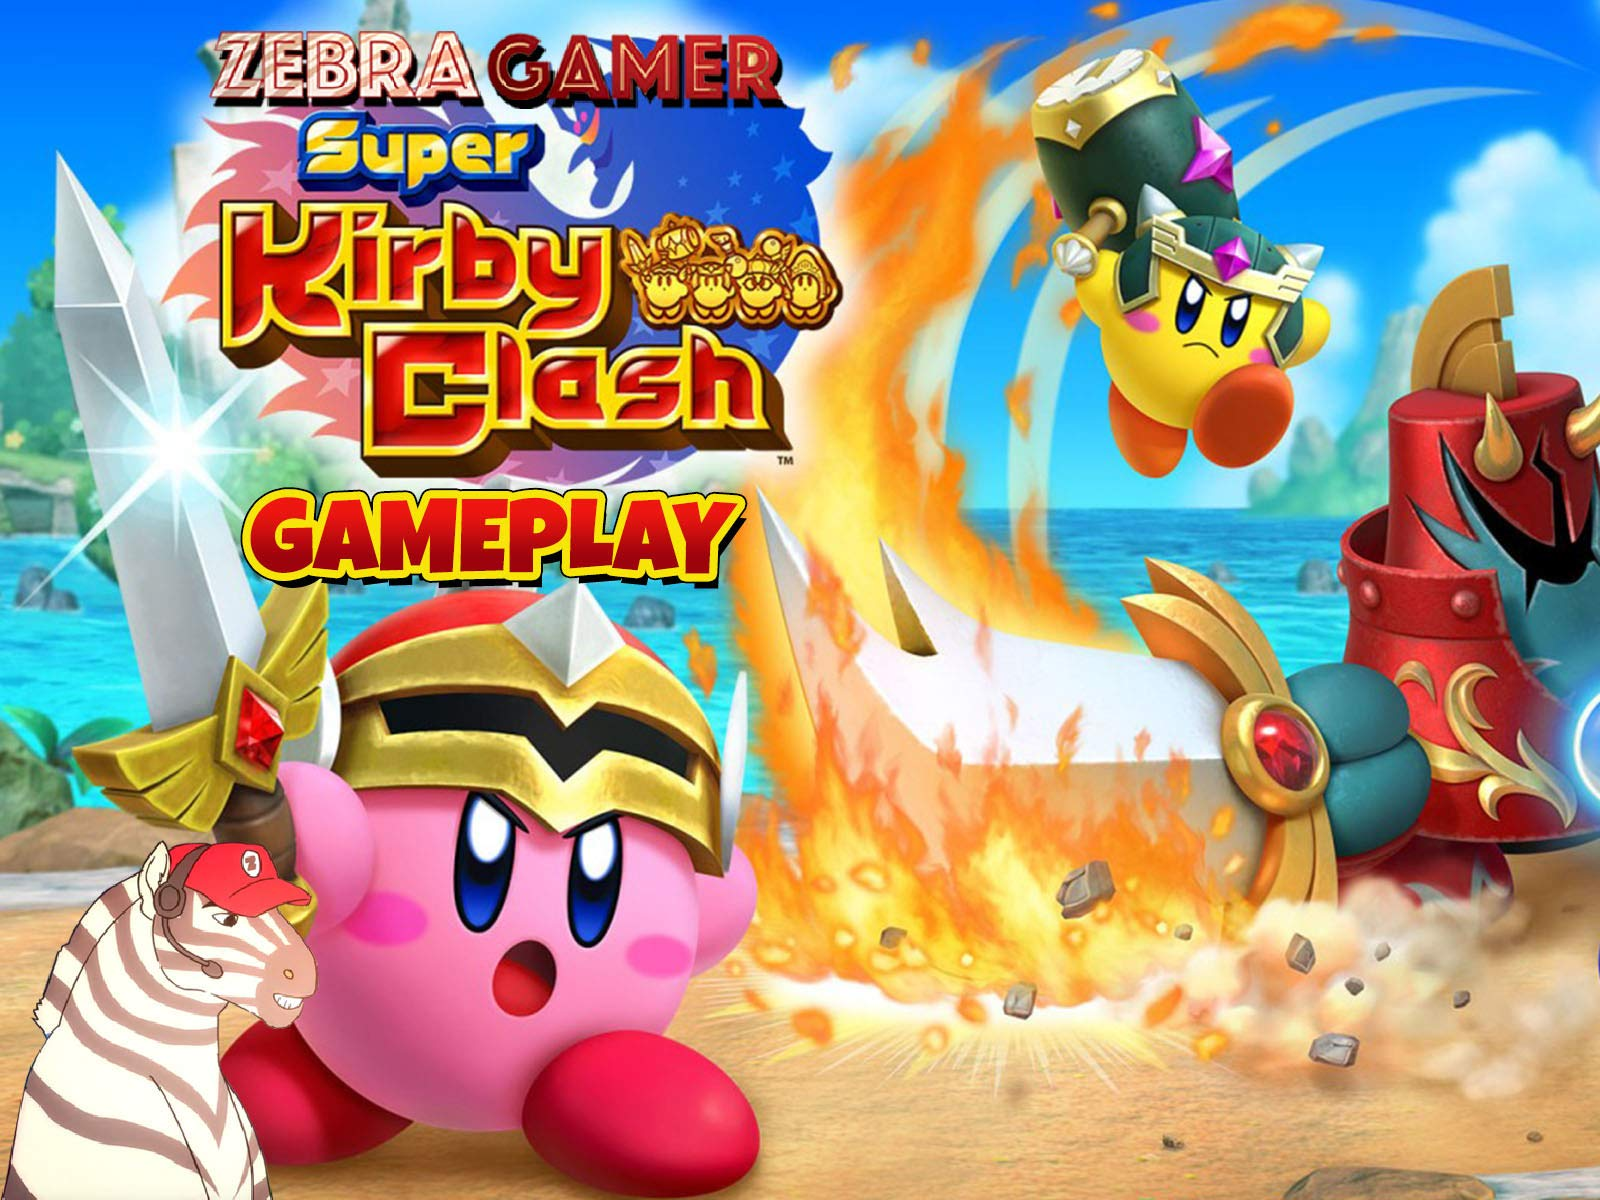 Clip: Super Kirby Clash Gameplay - Zebra Gamer on Amazon Prime Instant Video UK